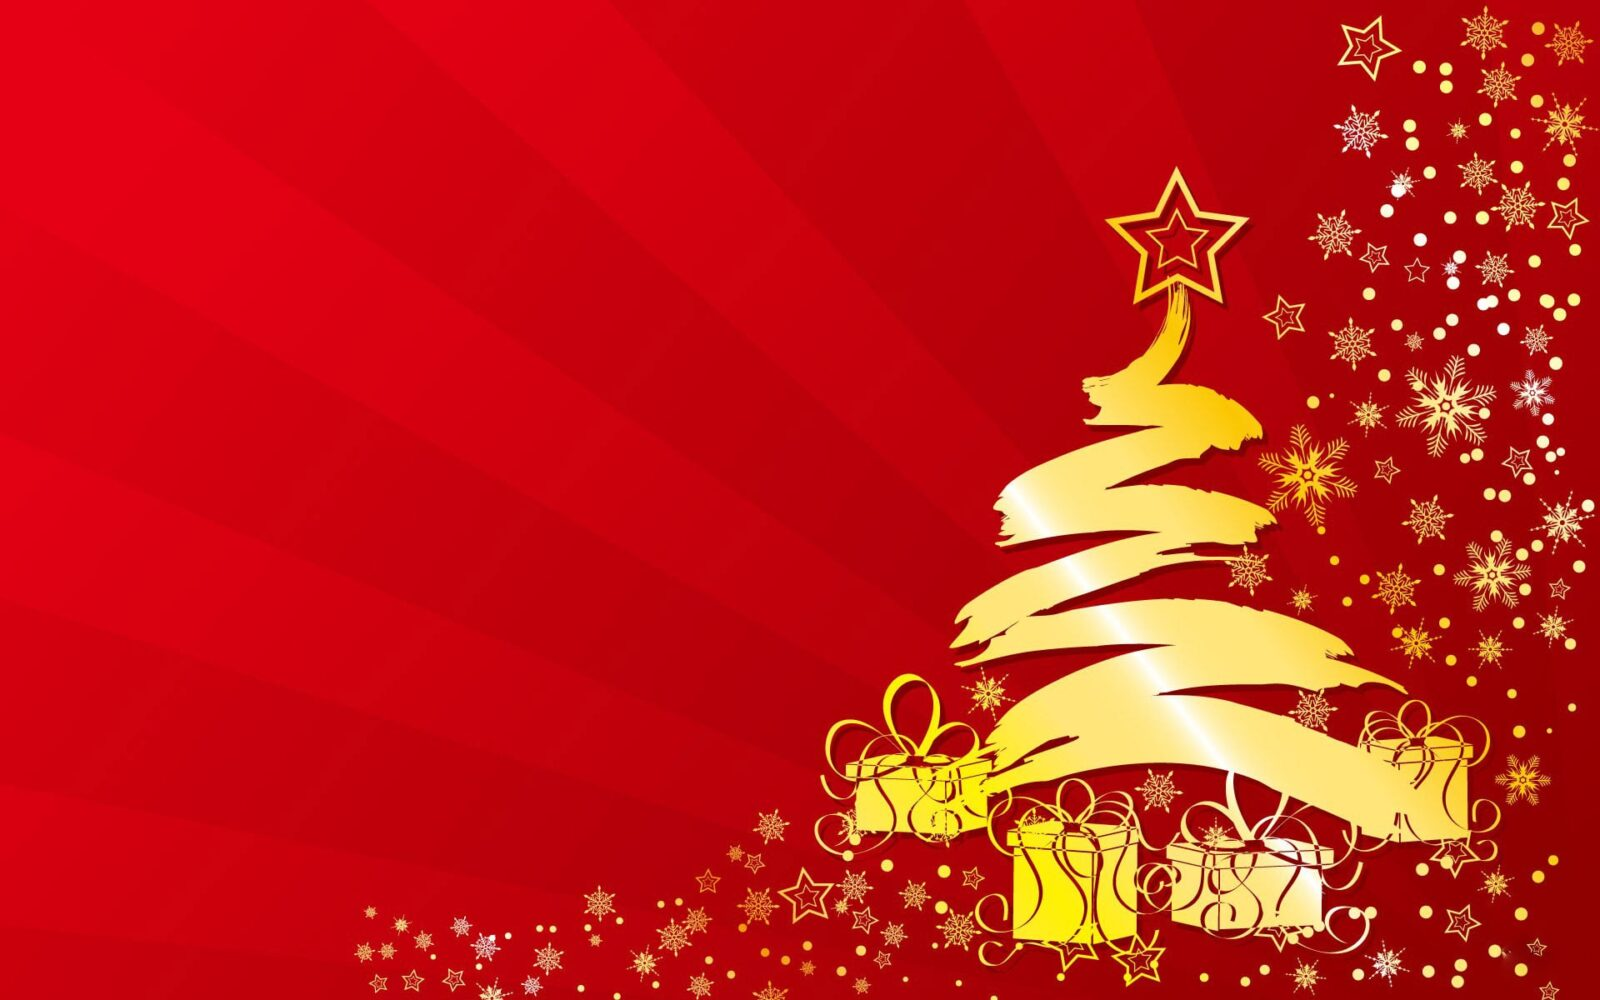 Christmas vector HD images